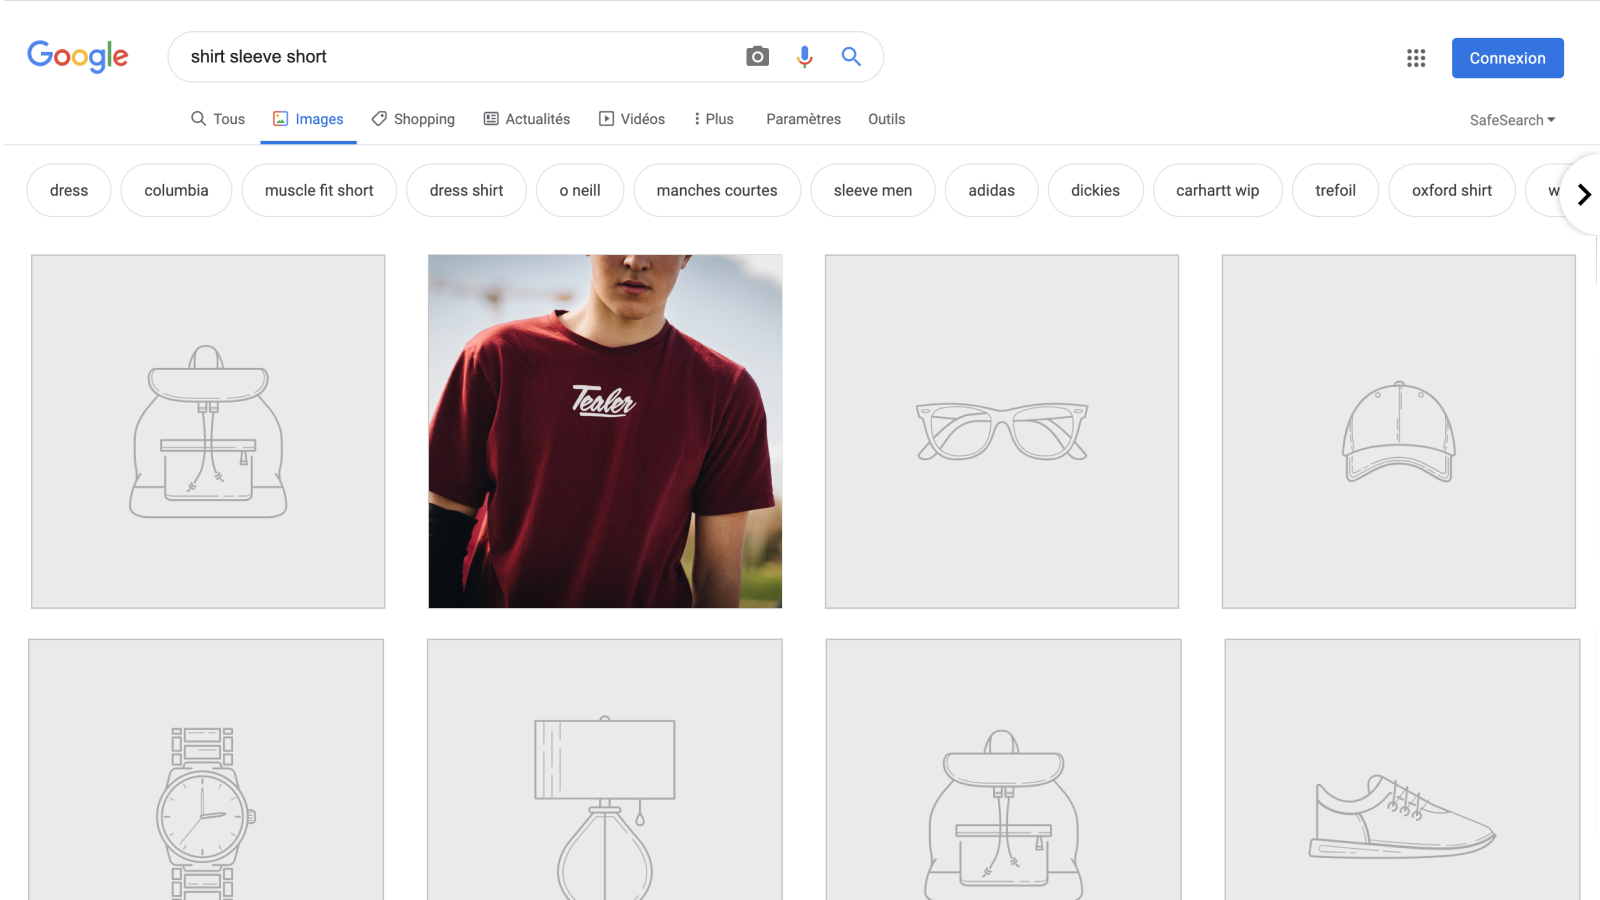 Image alt tags optimizer help you rank on Google search image